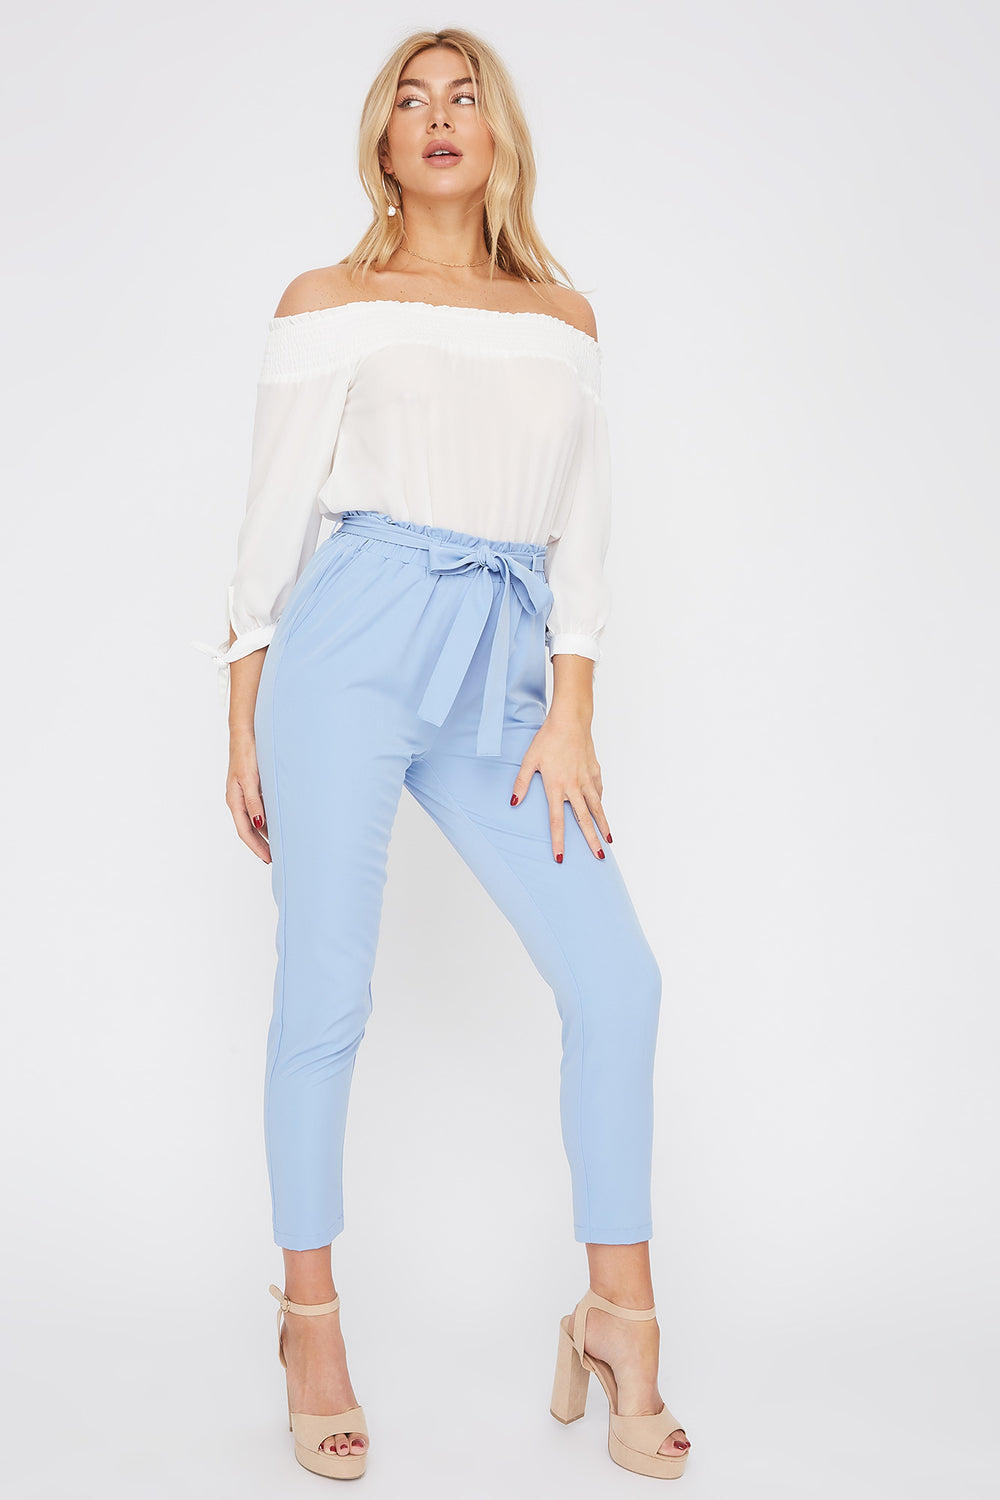 Self Tie Paperbag Skinny Pant Light Blue